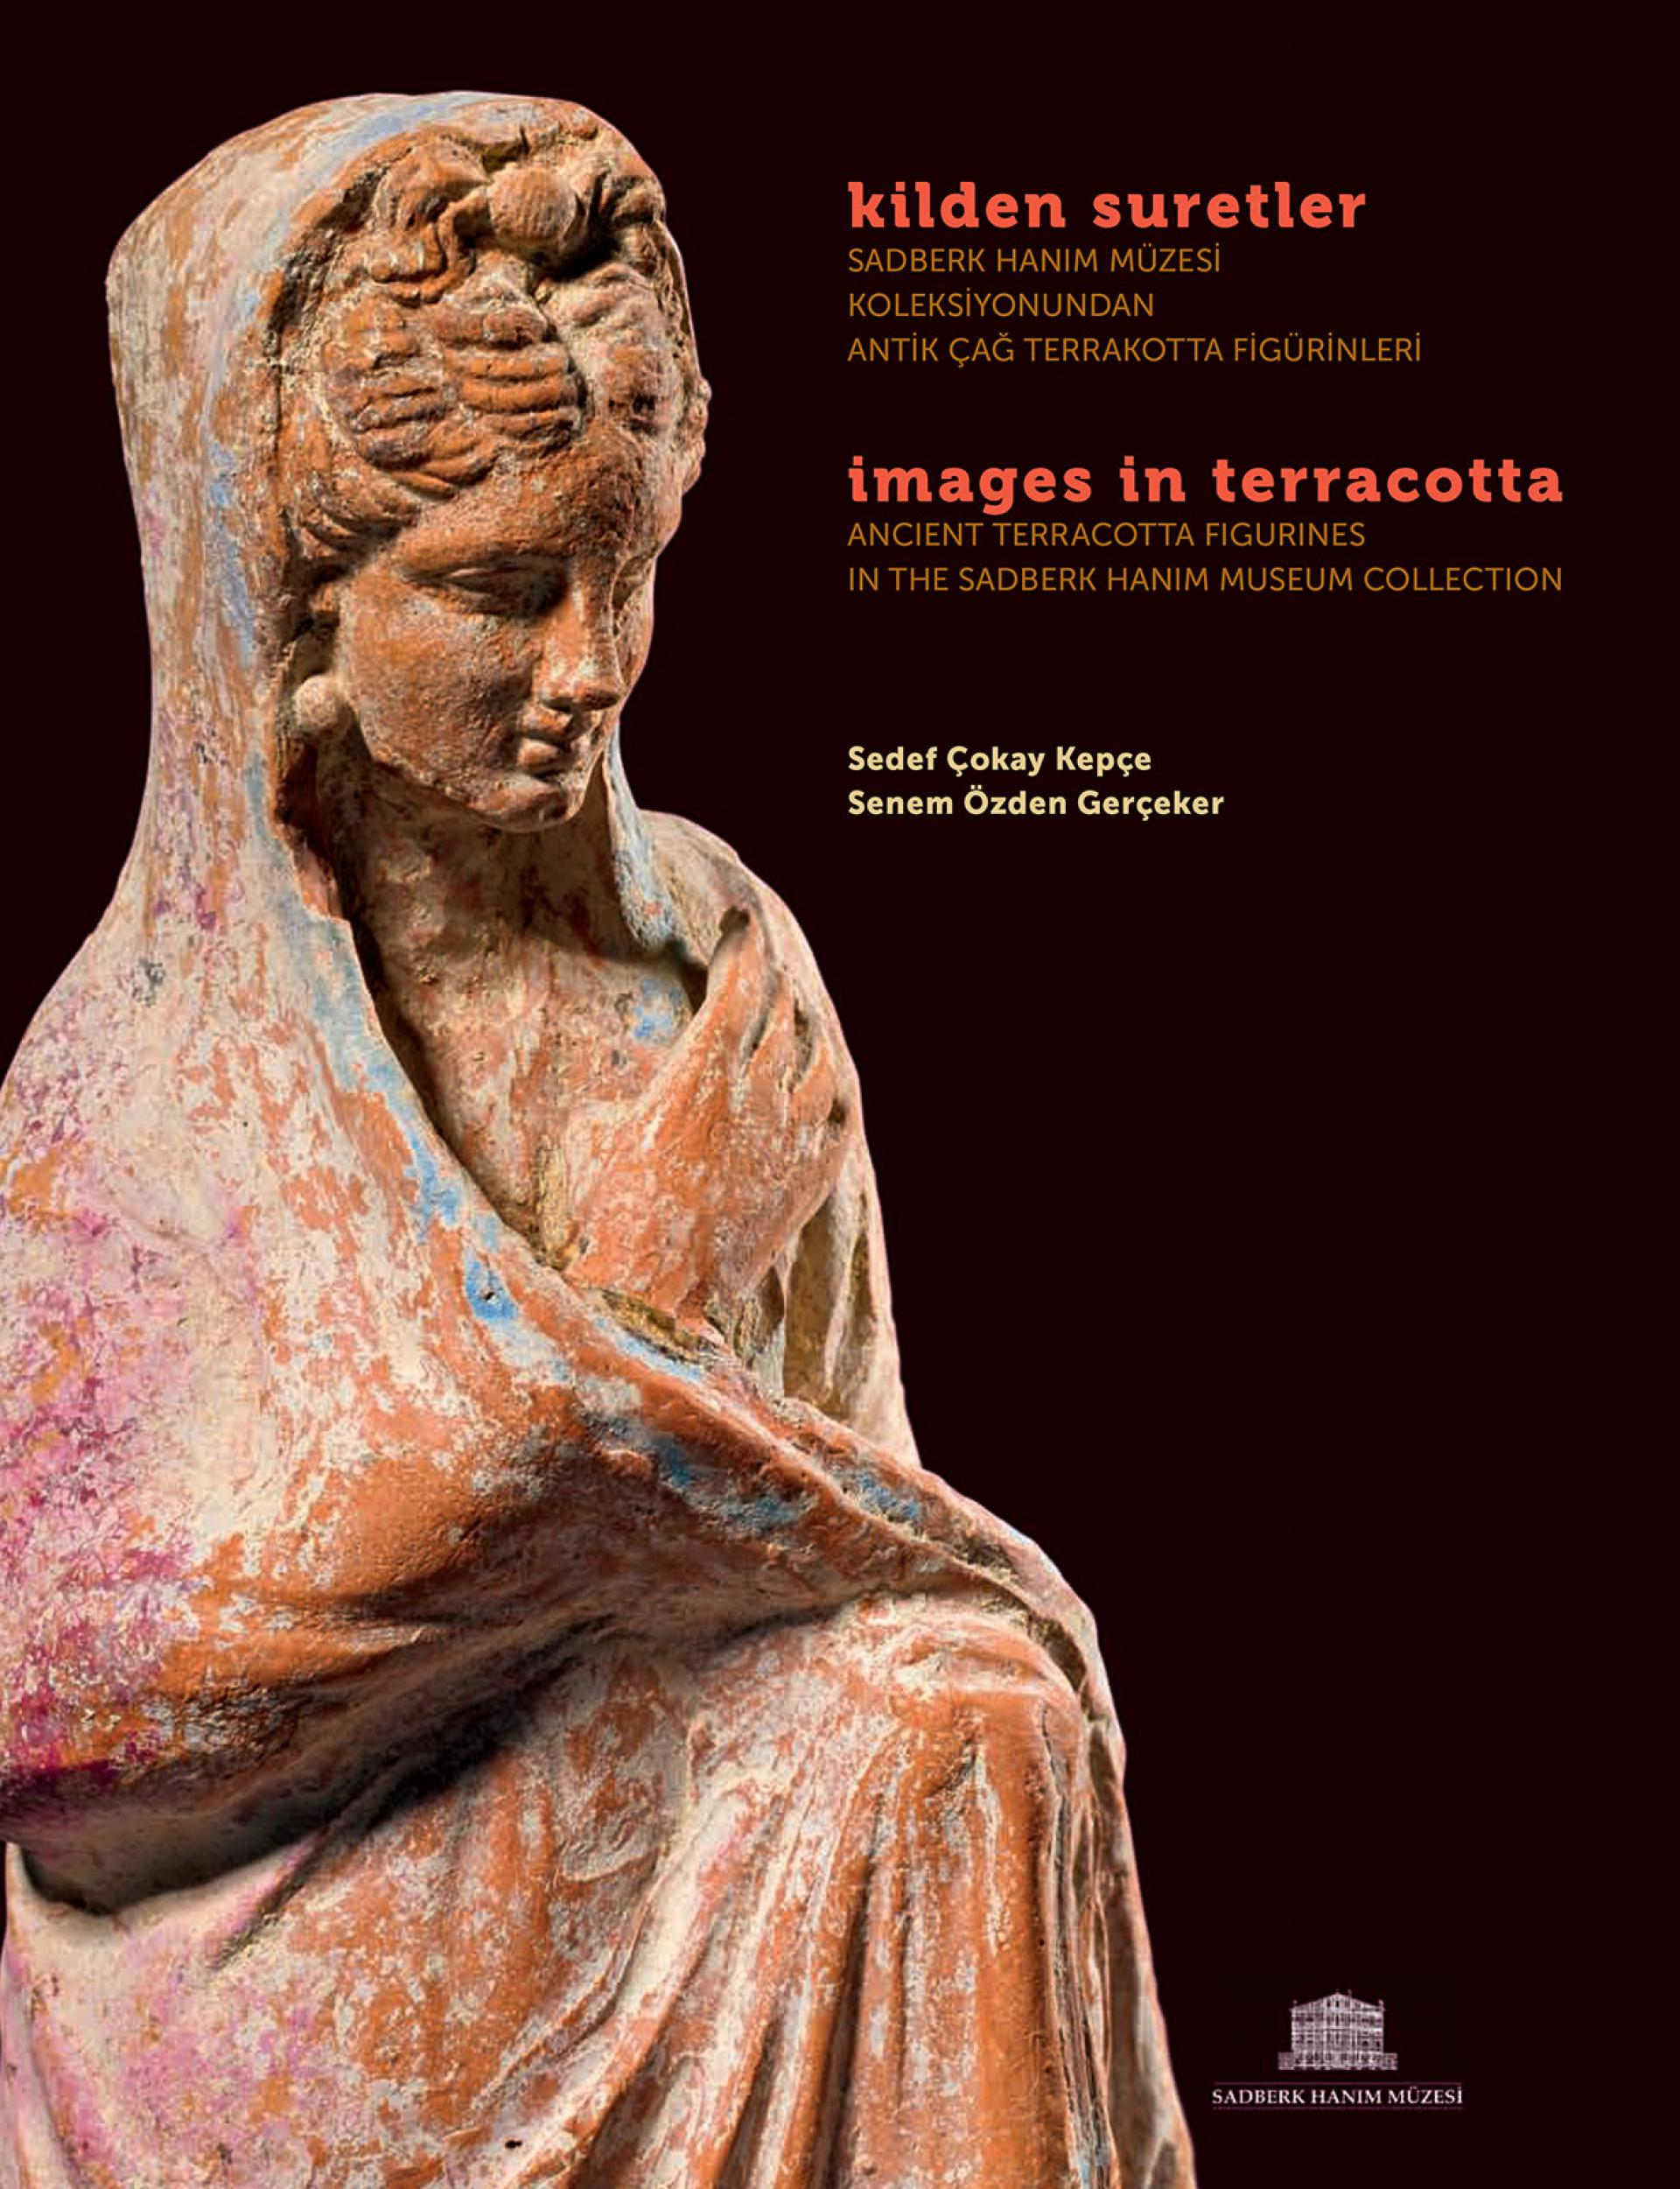 Images In Terracotta - Ancient Terracotta Figurines In The Sadberk Hanım Museum Collection - Sadberk Hanım Museum